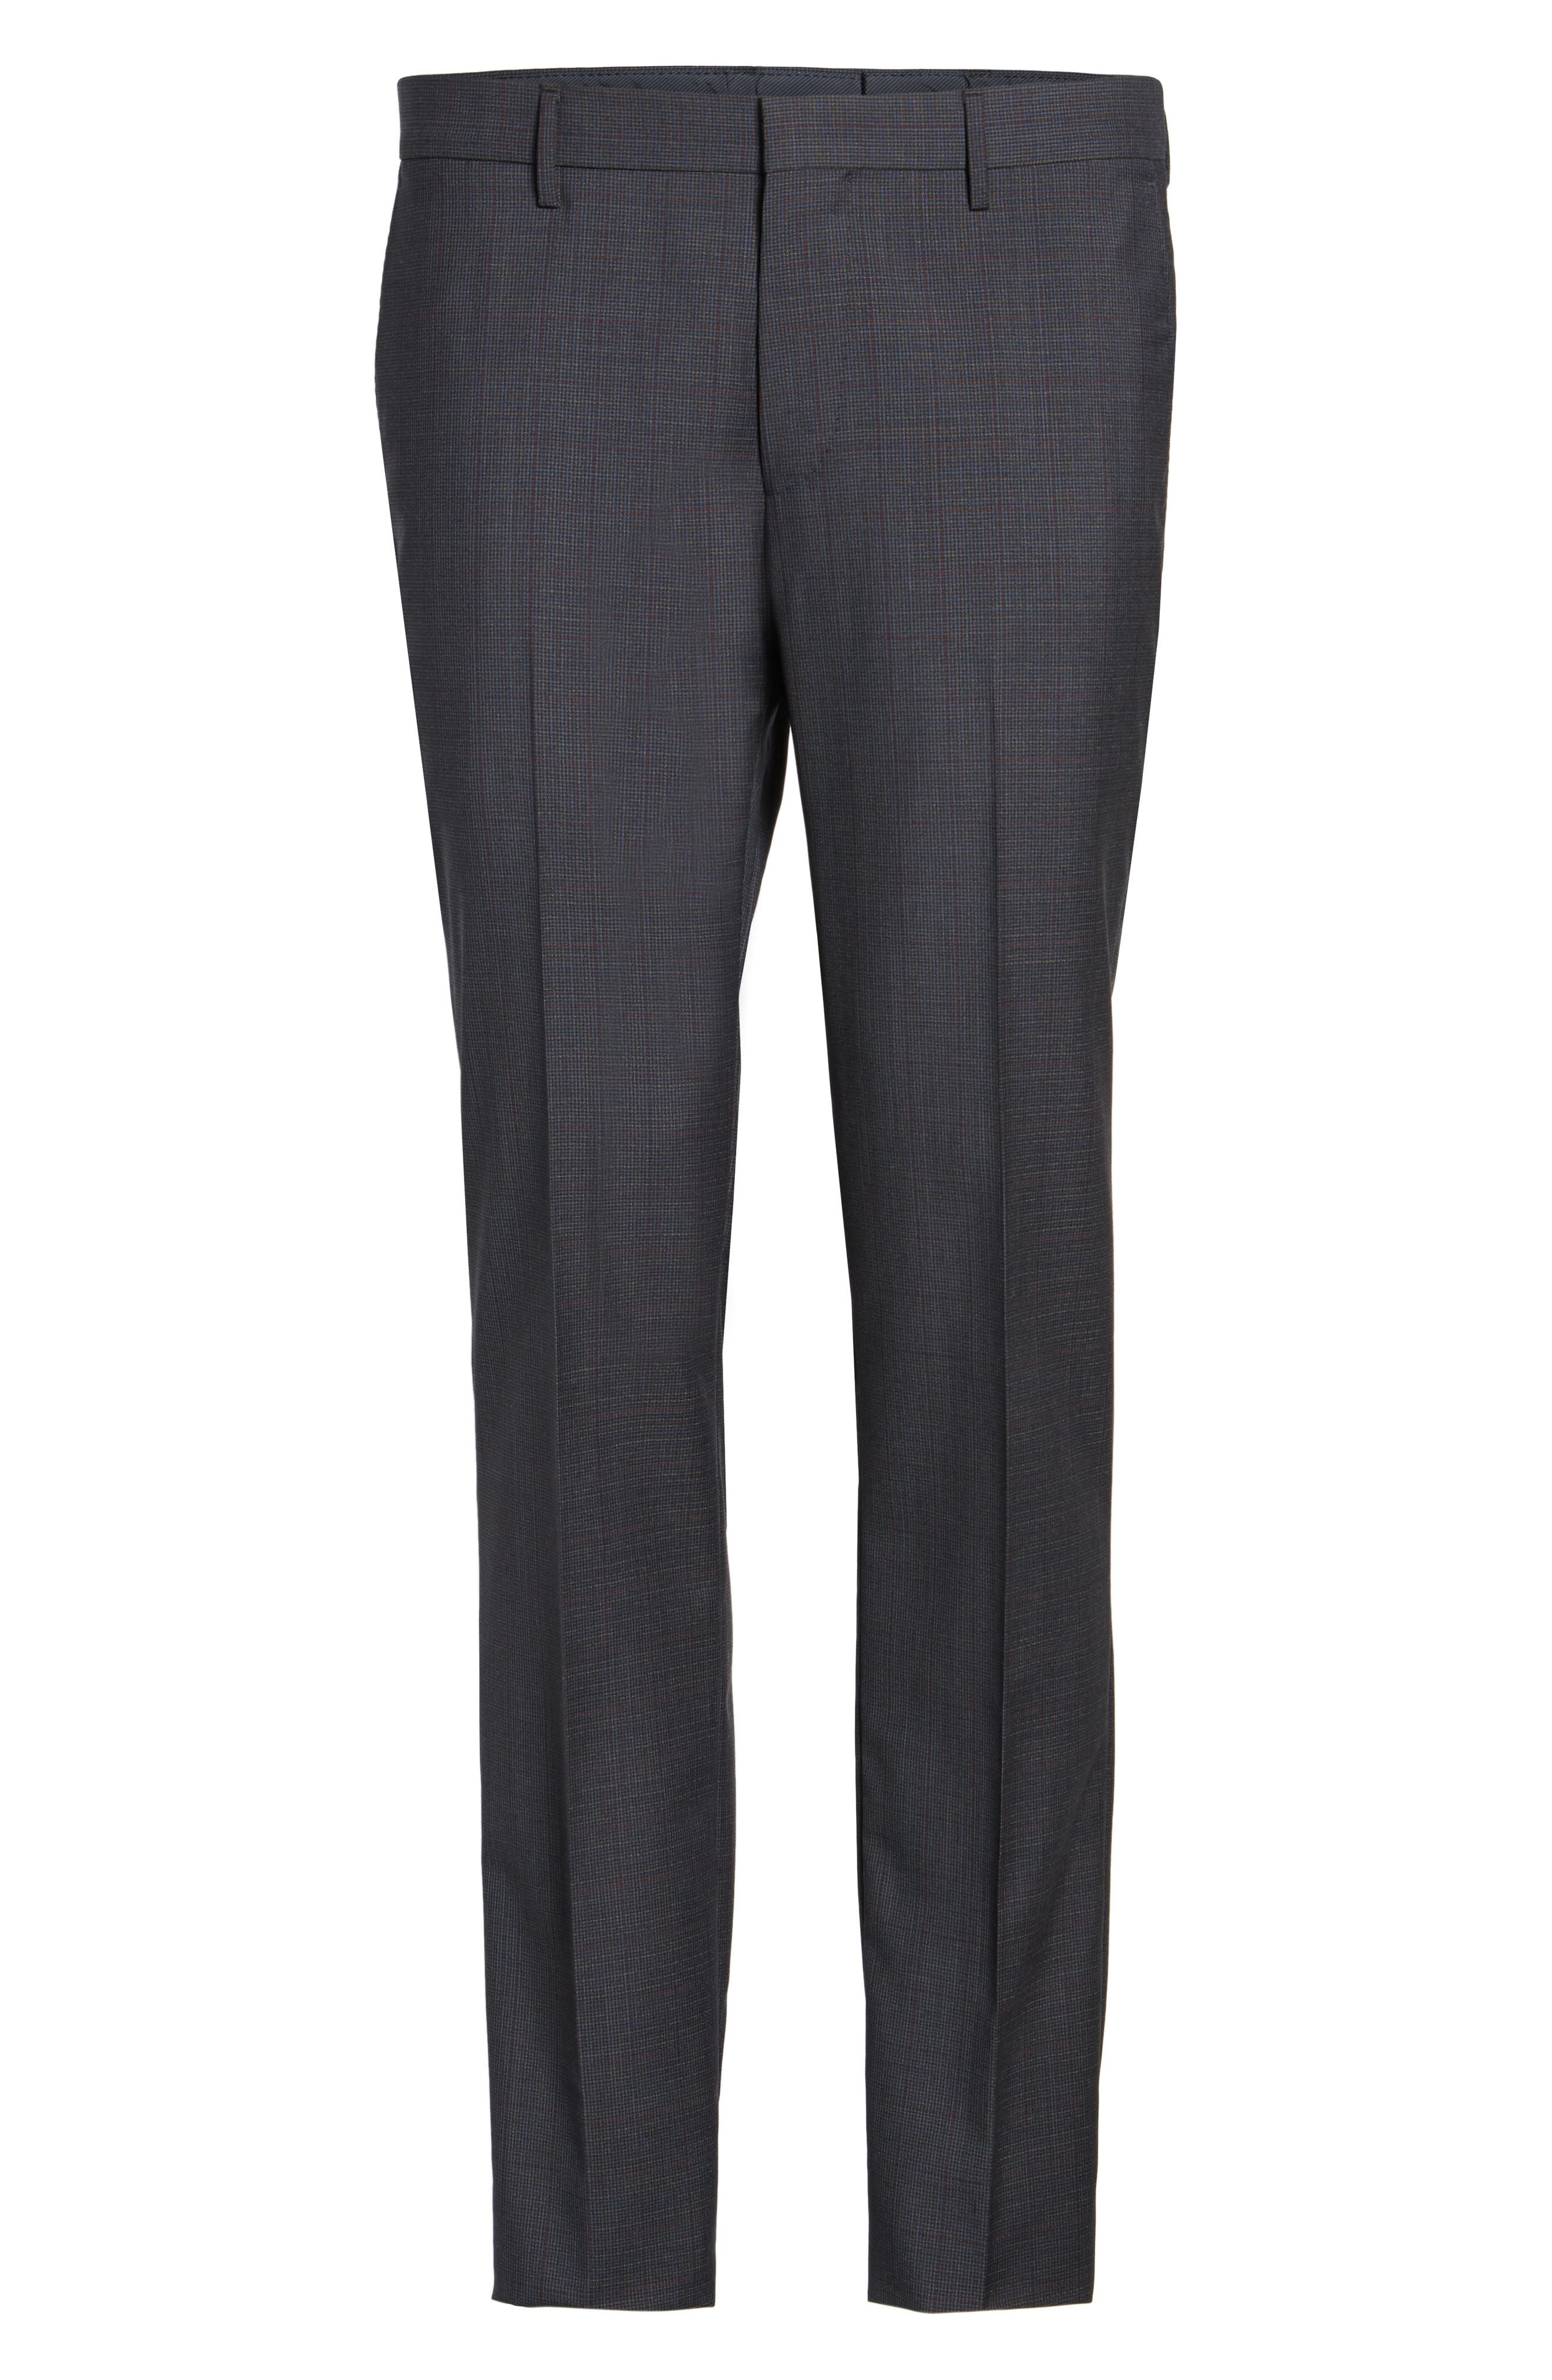 Benso Flat Front Houndstooth Wool Trousers,                             Alternate thumbnail 6, color,                             410